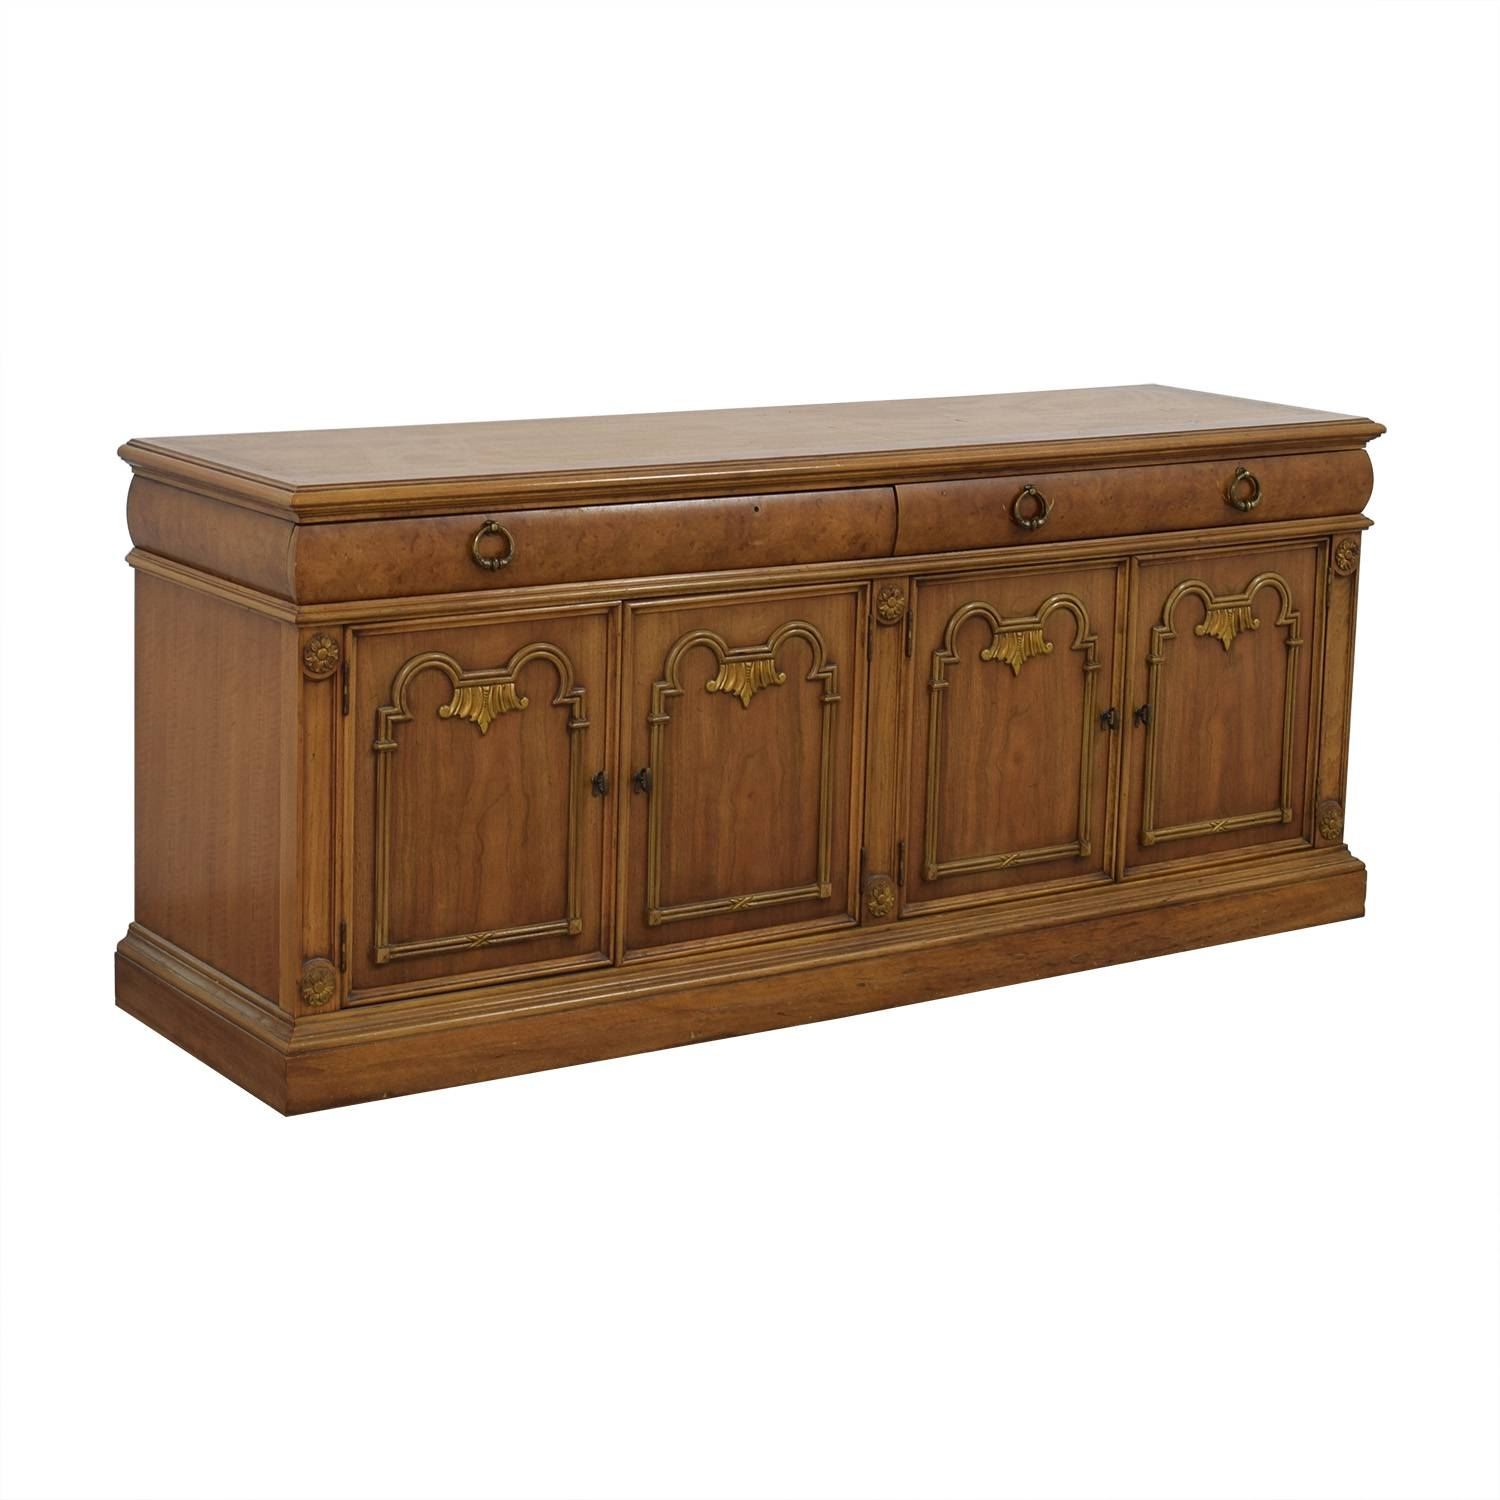 79% Off - Thomasville Thomasville Buffet Storage Cabinet / Storage with regard to Thomasville Sideboards (Image 3 of 15)